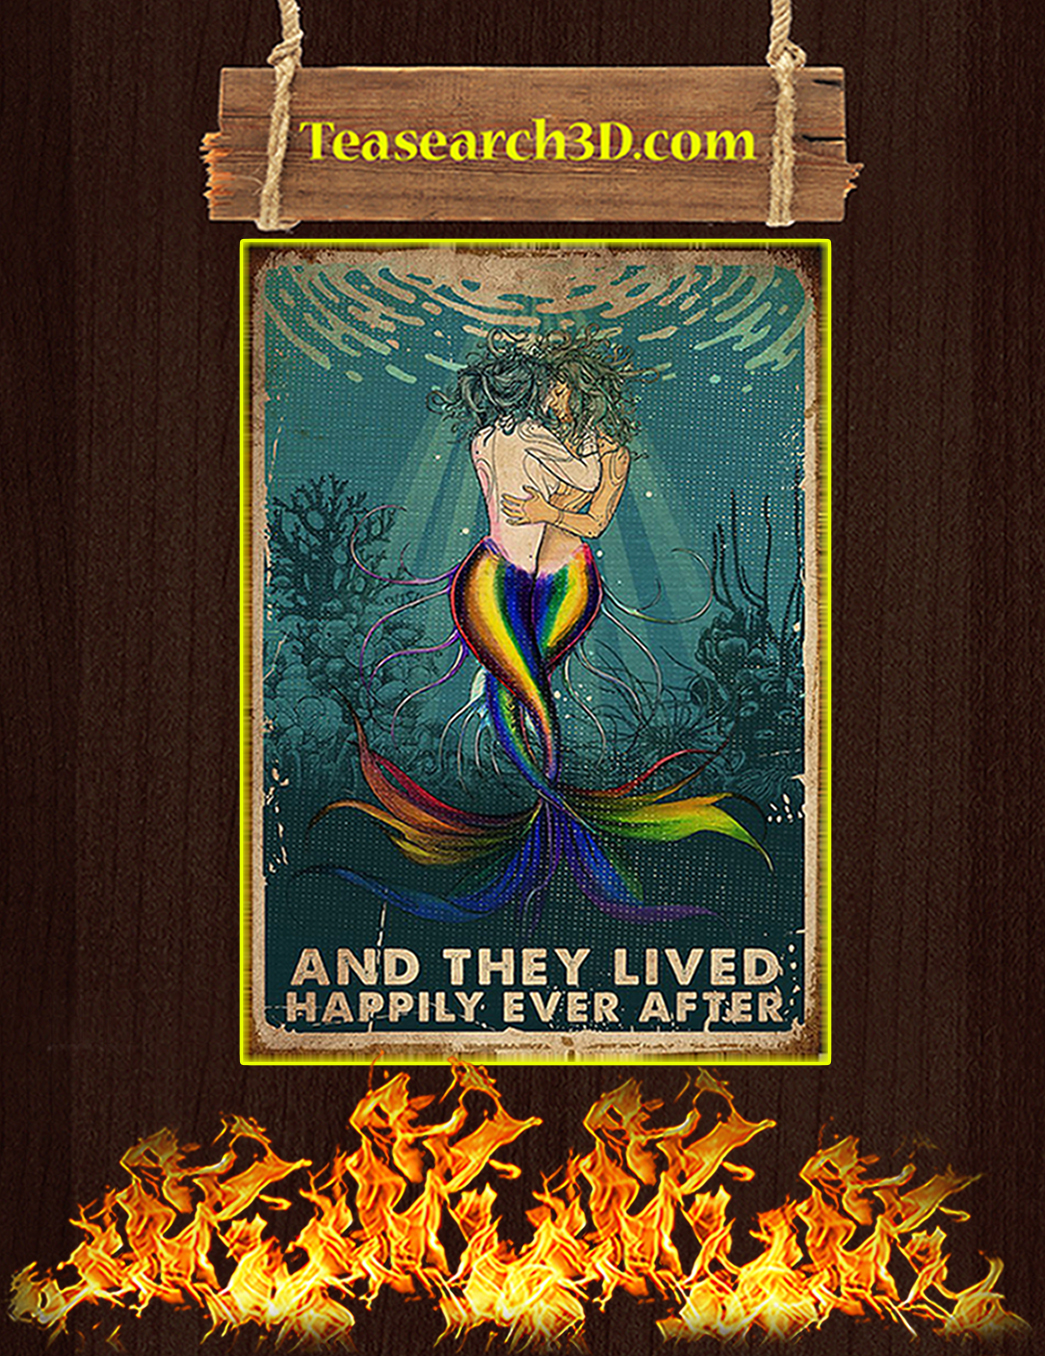 LGBT mermaid and they lived happily ever after poster A1